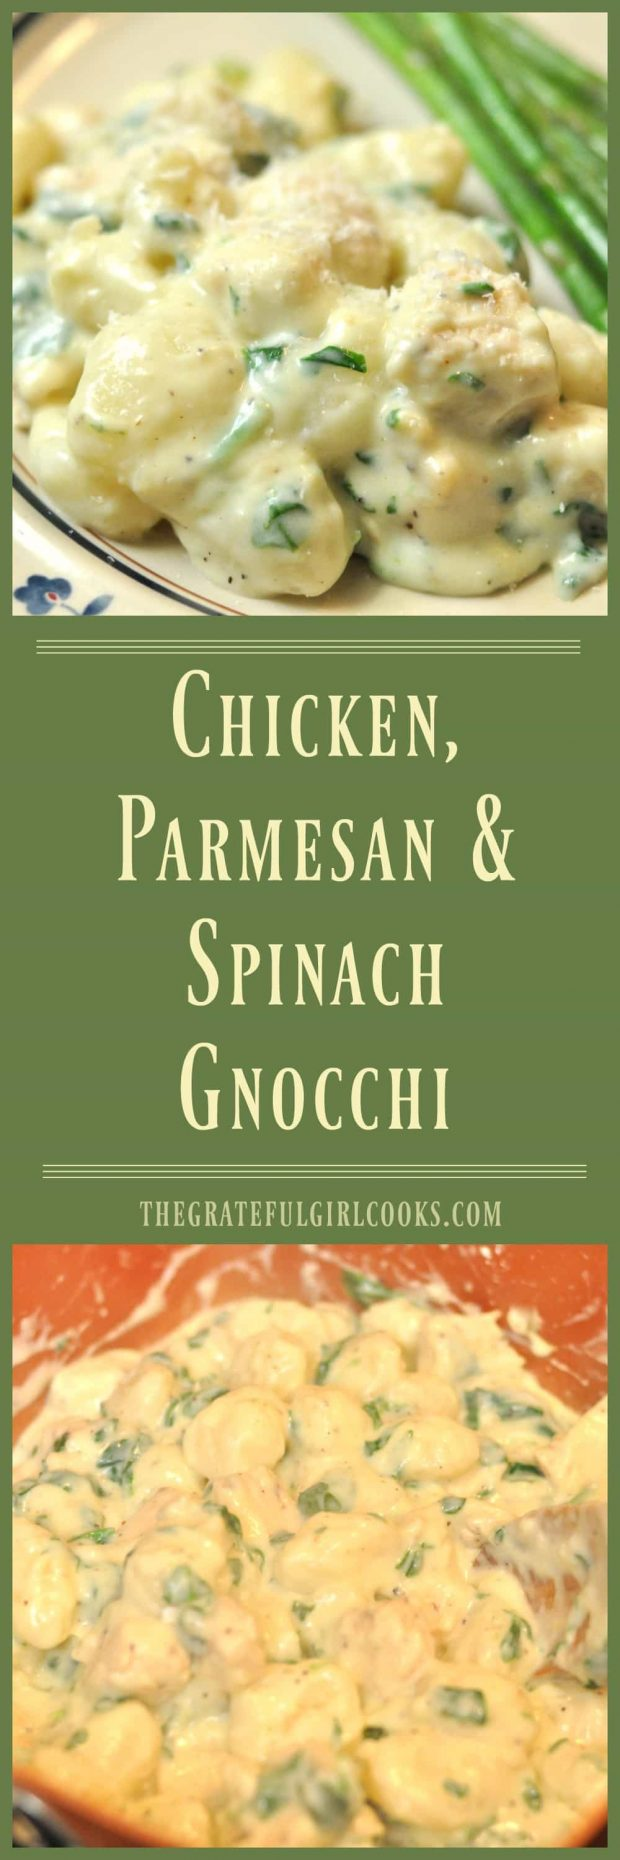 Chicken, Parmesan & Spinach Gnocchi / The Grateful Girl Cooks! Enjoy this simple yet delicious meal in about 30 minutes from start to finish!